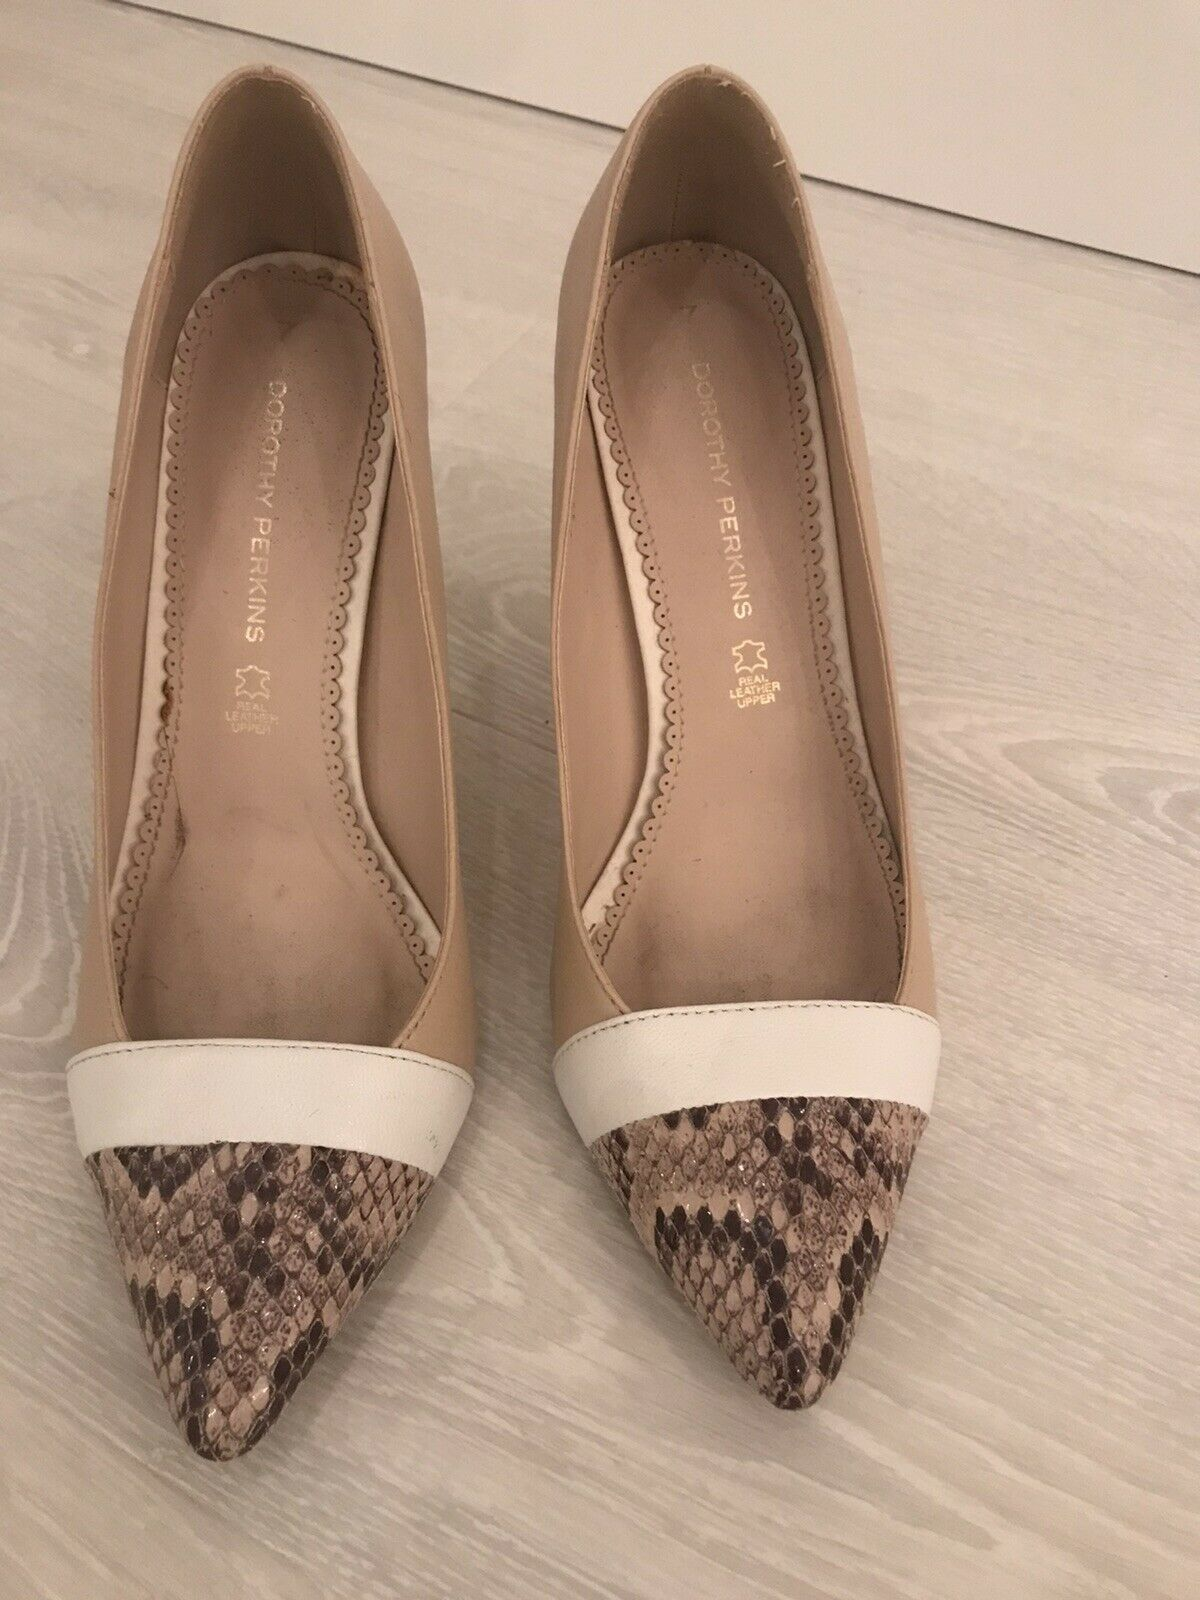 ladies shoes size 7 used